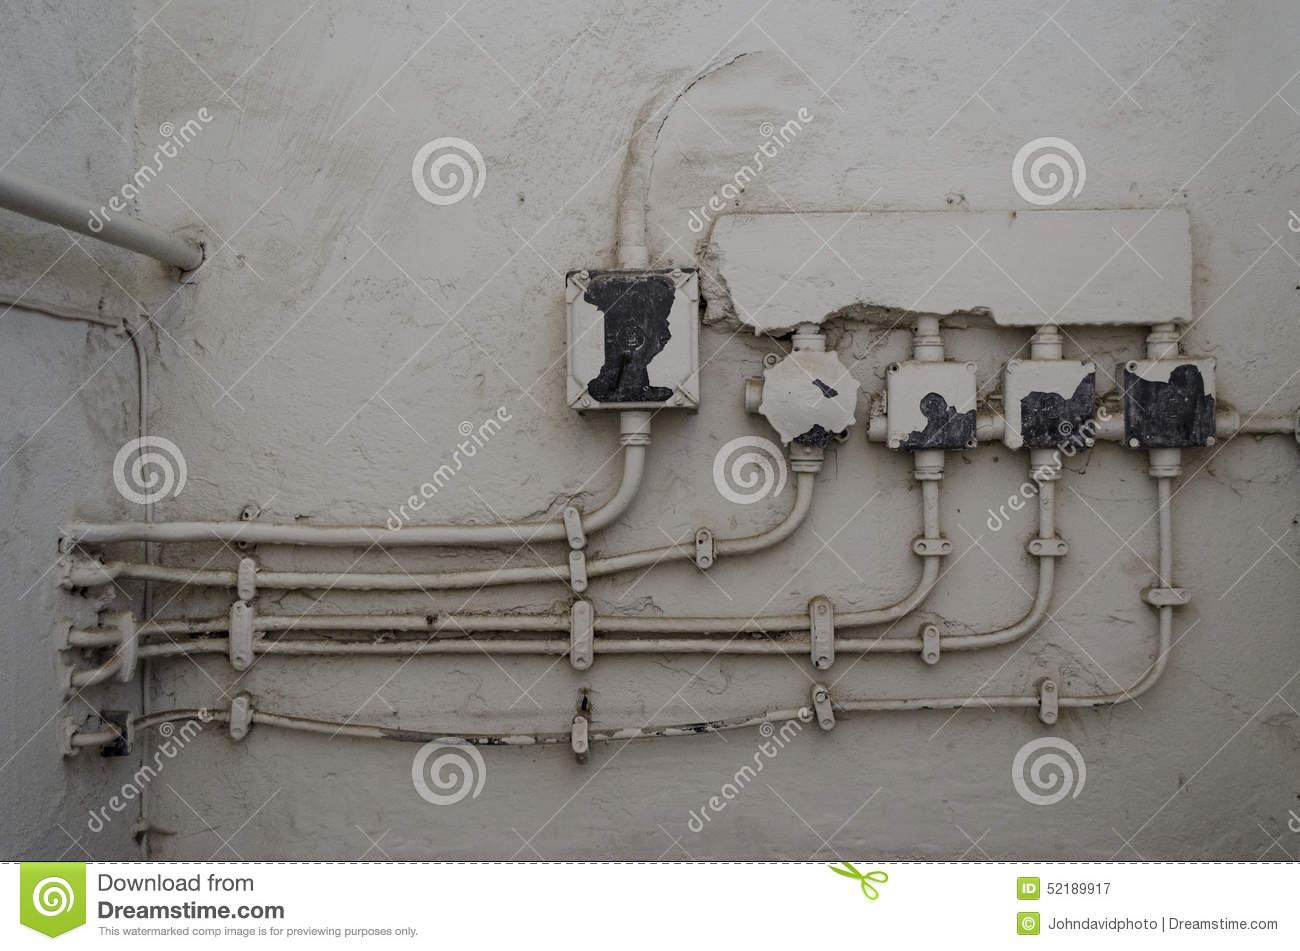 47 Electrical Trunking Photos Free Royalty Free Stock Photos From Dreamstime